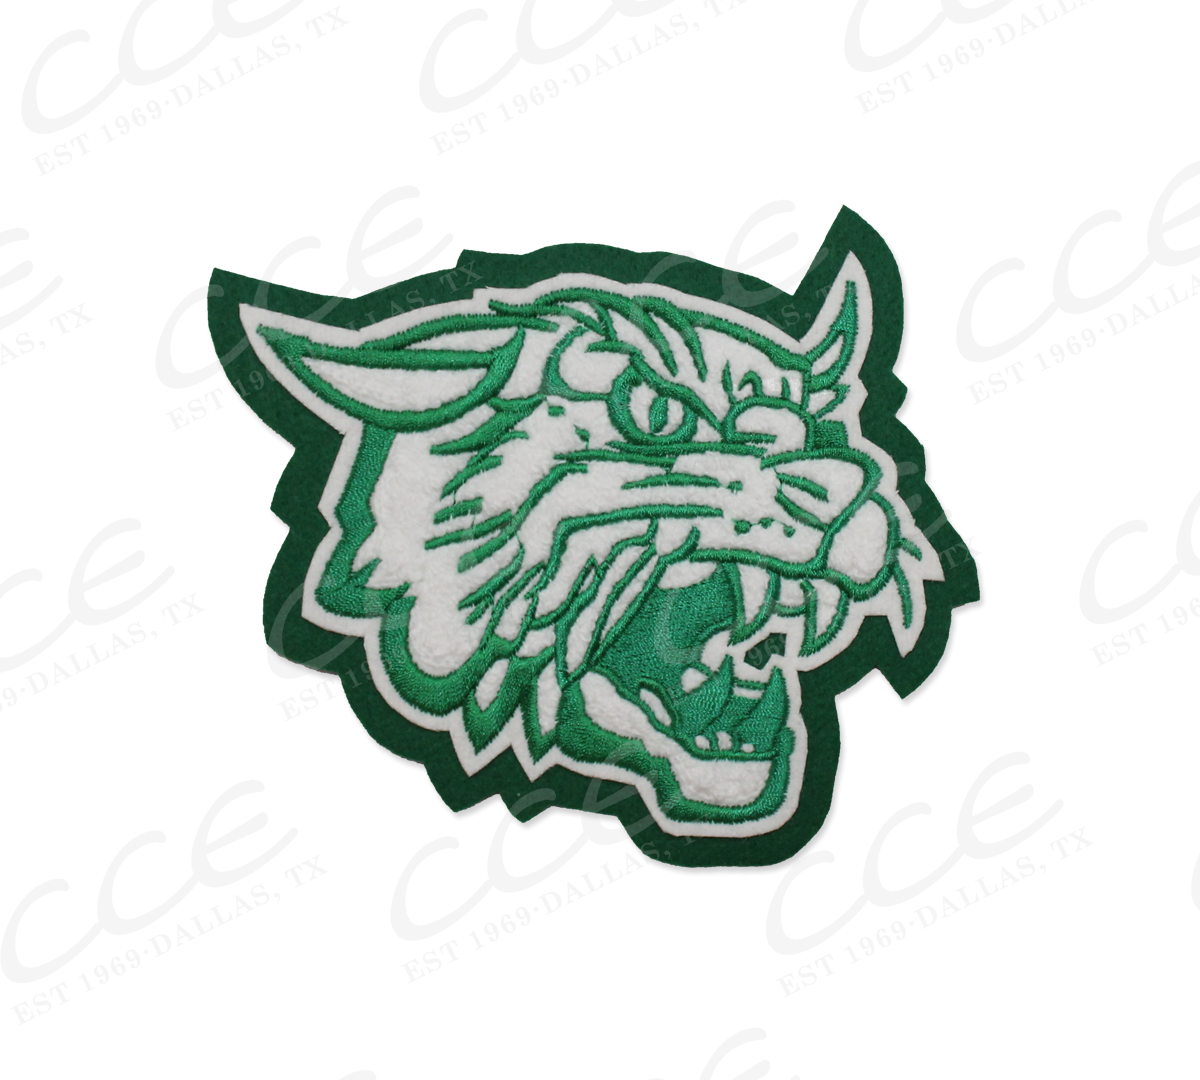 Wildcat clipart woodland. Kennedale hs wildcats sleeve